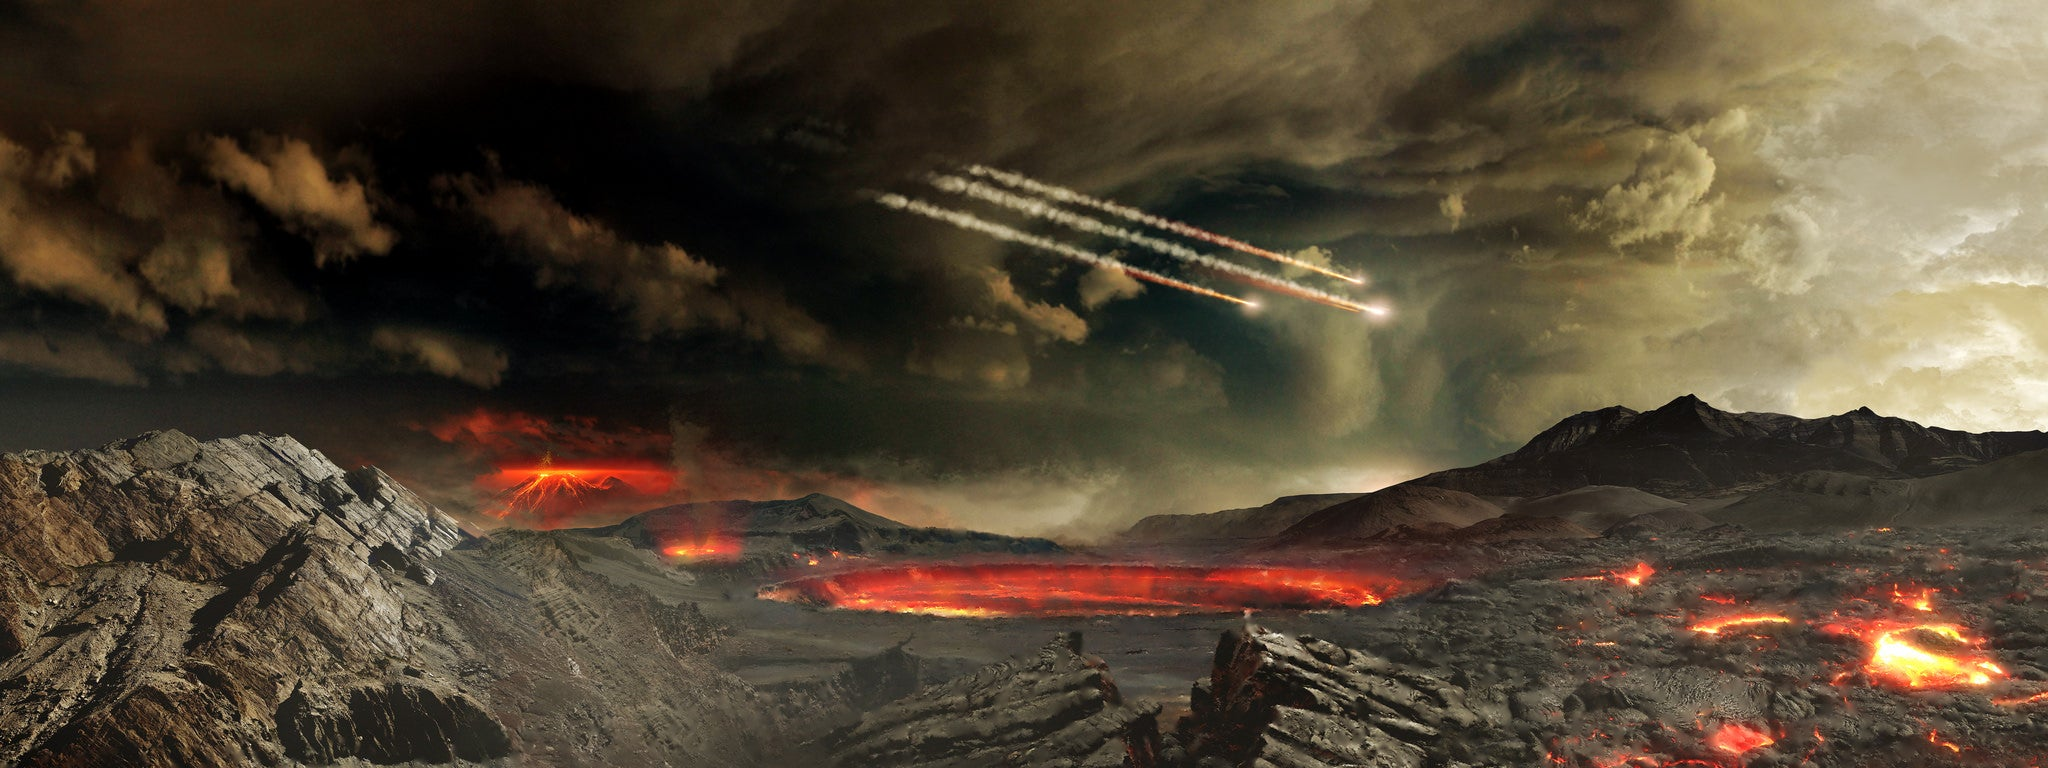 Life May Have Gotten Started On Earth Almost Immediately